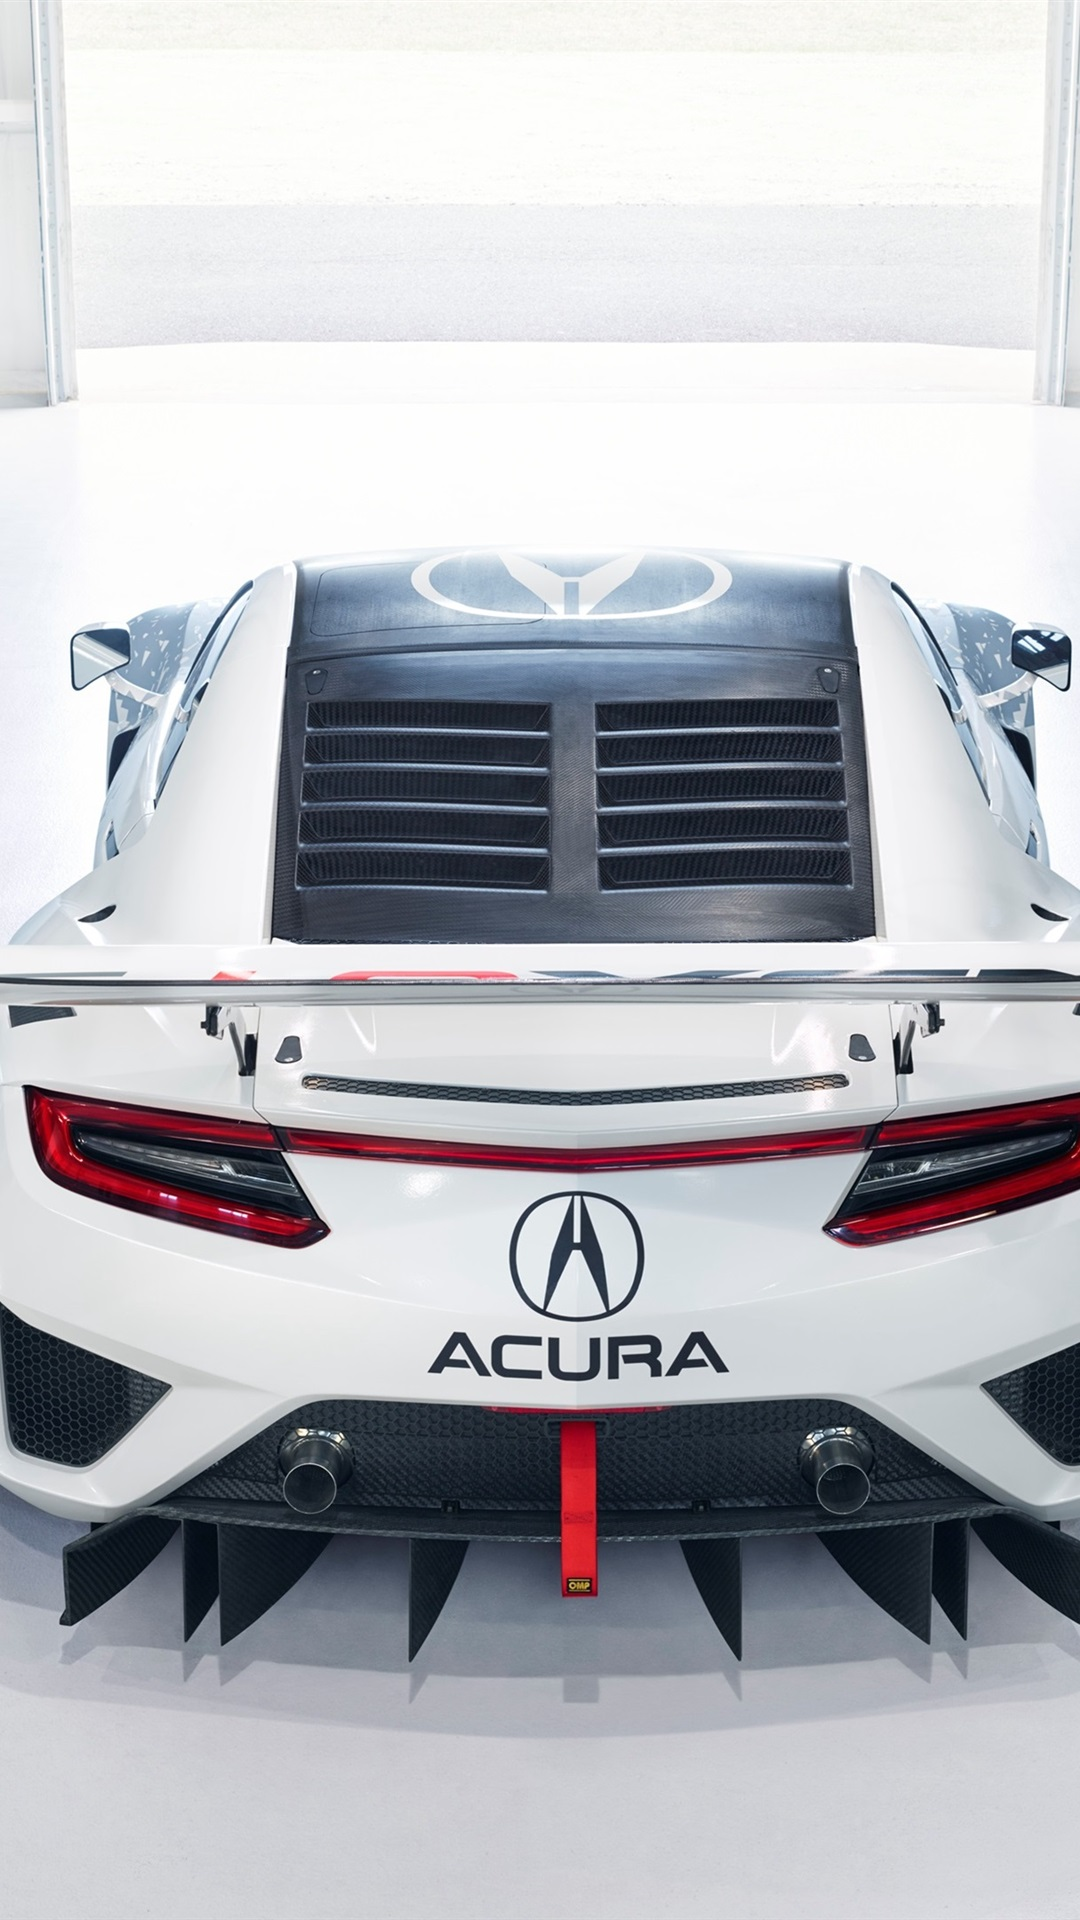 Acura Nsx Gt3 Supercar Back View 1080x1920 Iphone 8 7 6 6s